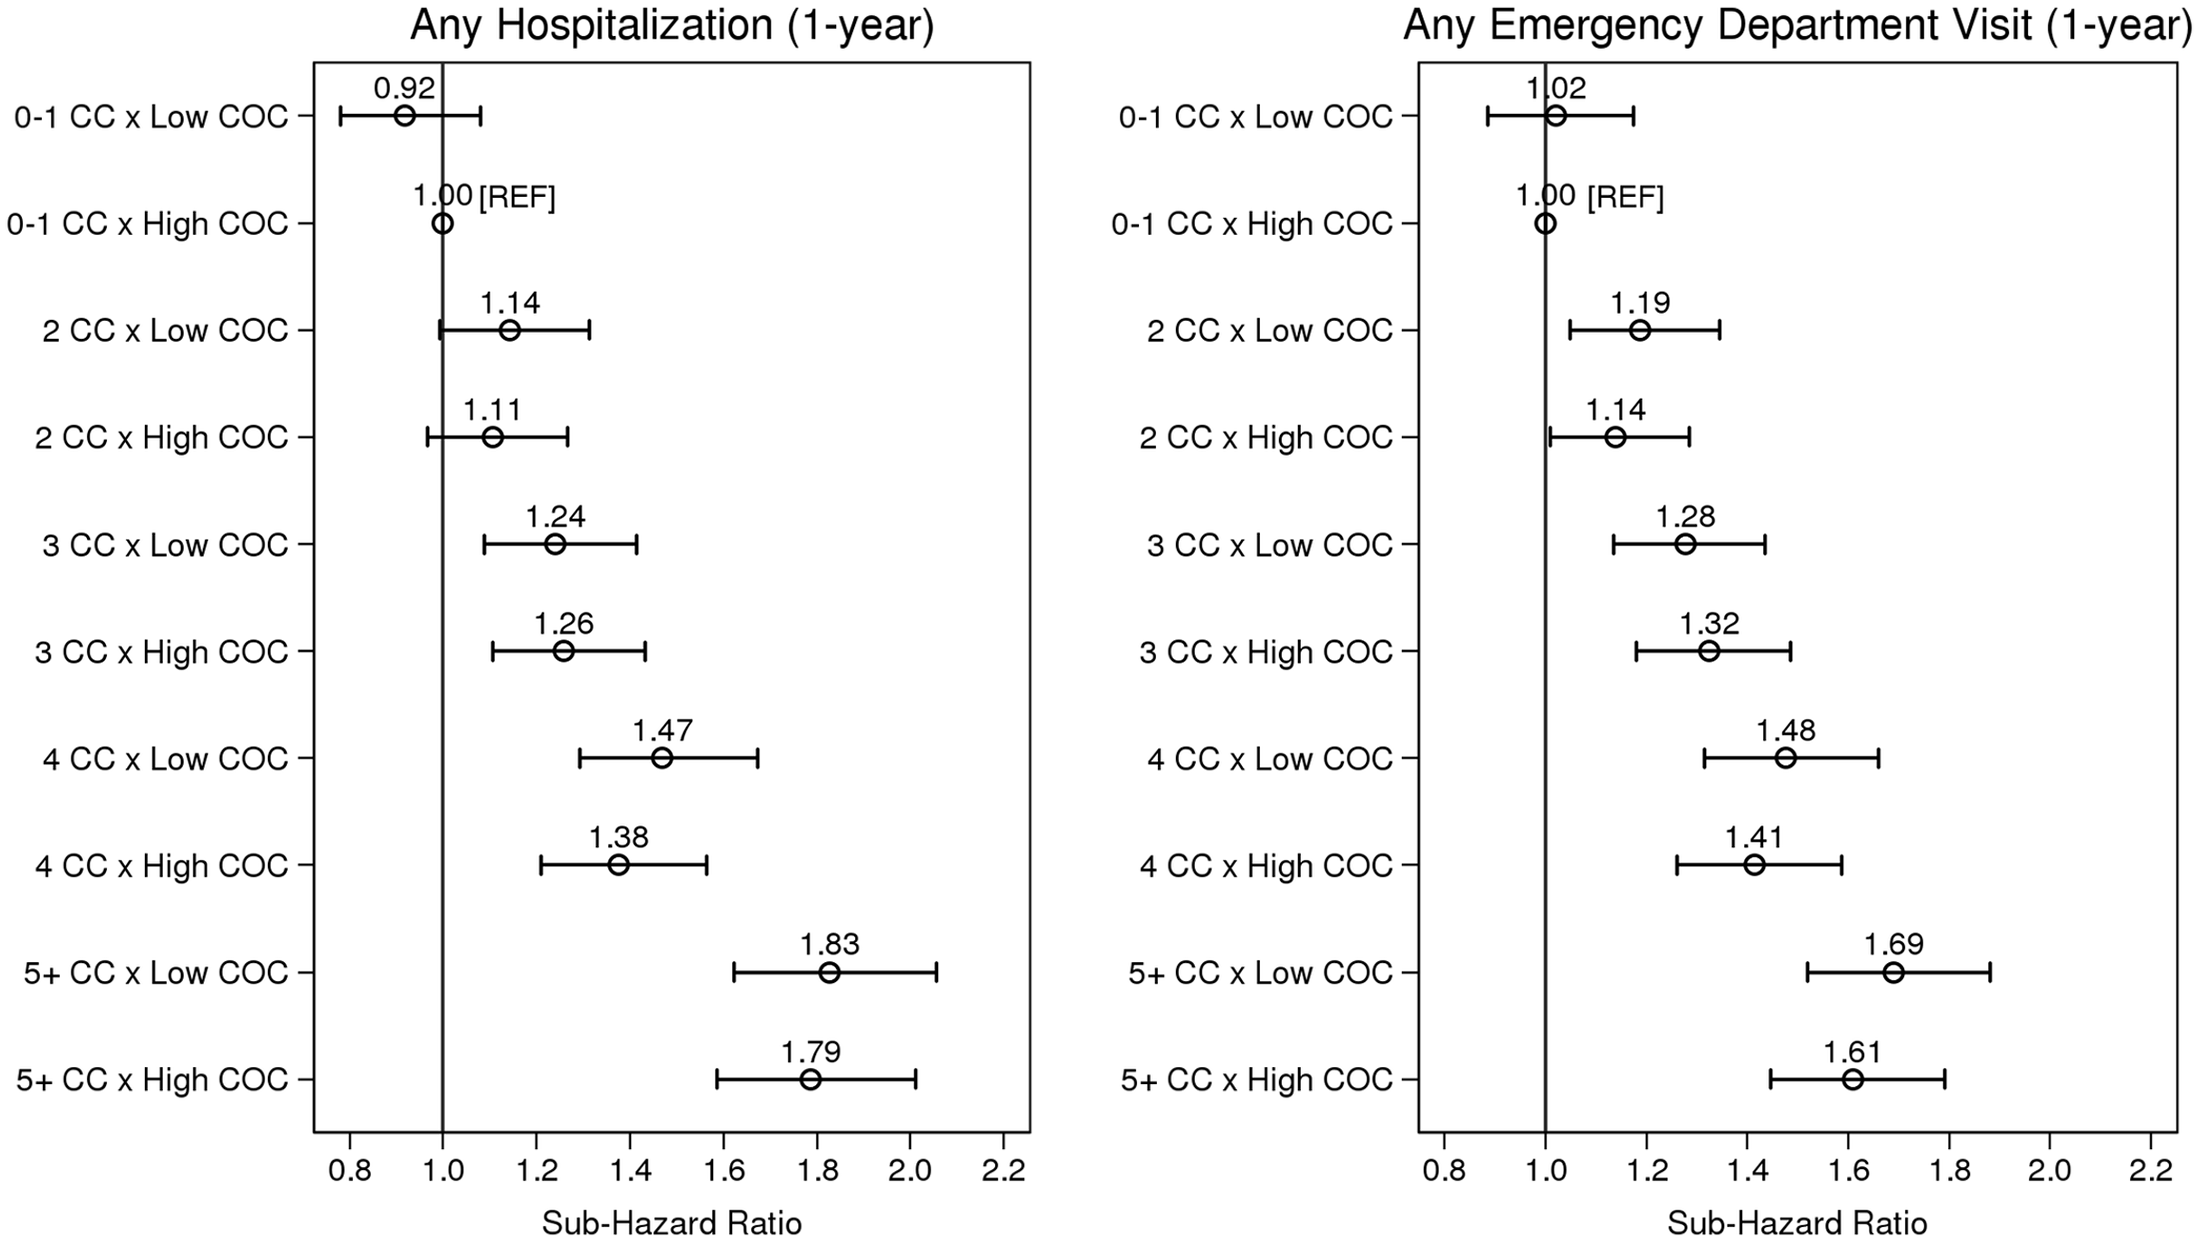 The association between level of multimorbidity and 1-y risk of acute hospitalization and emergency department visit as modified by continuity of care.